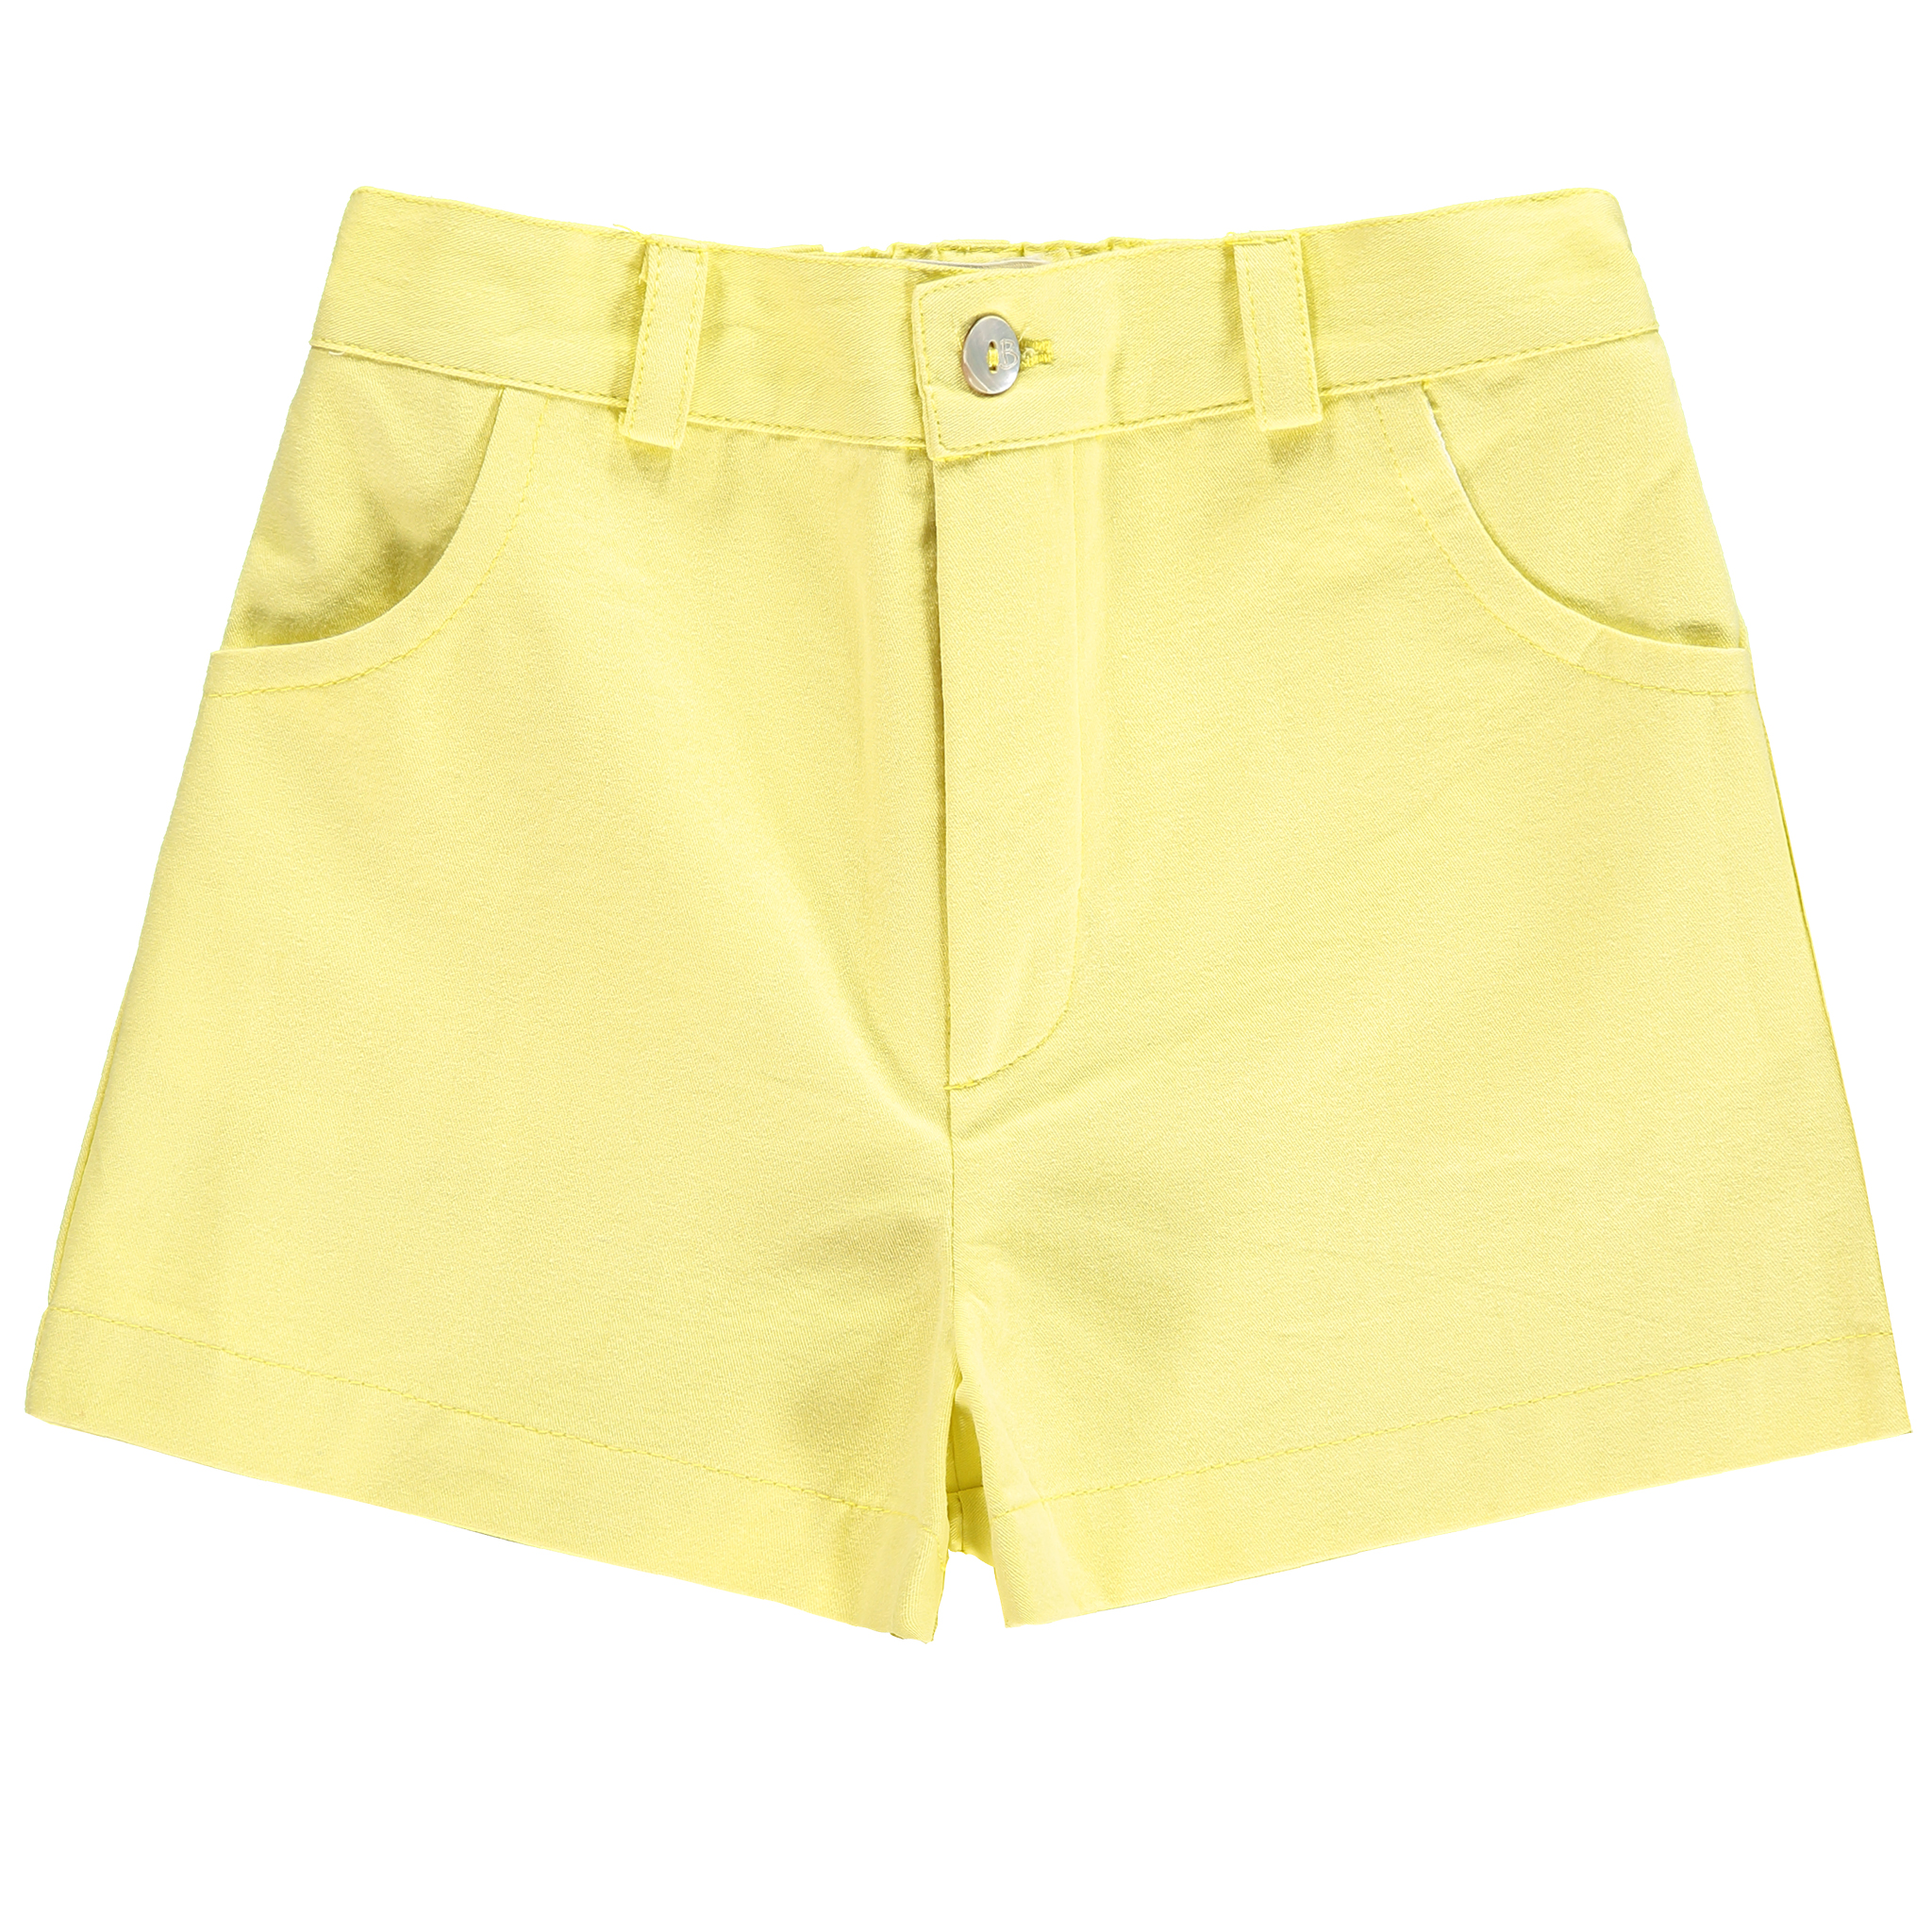 Benedita SS19 Shorts Boy in Yellow